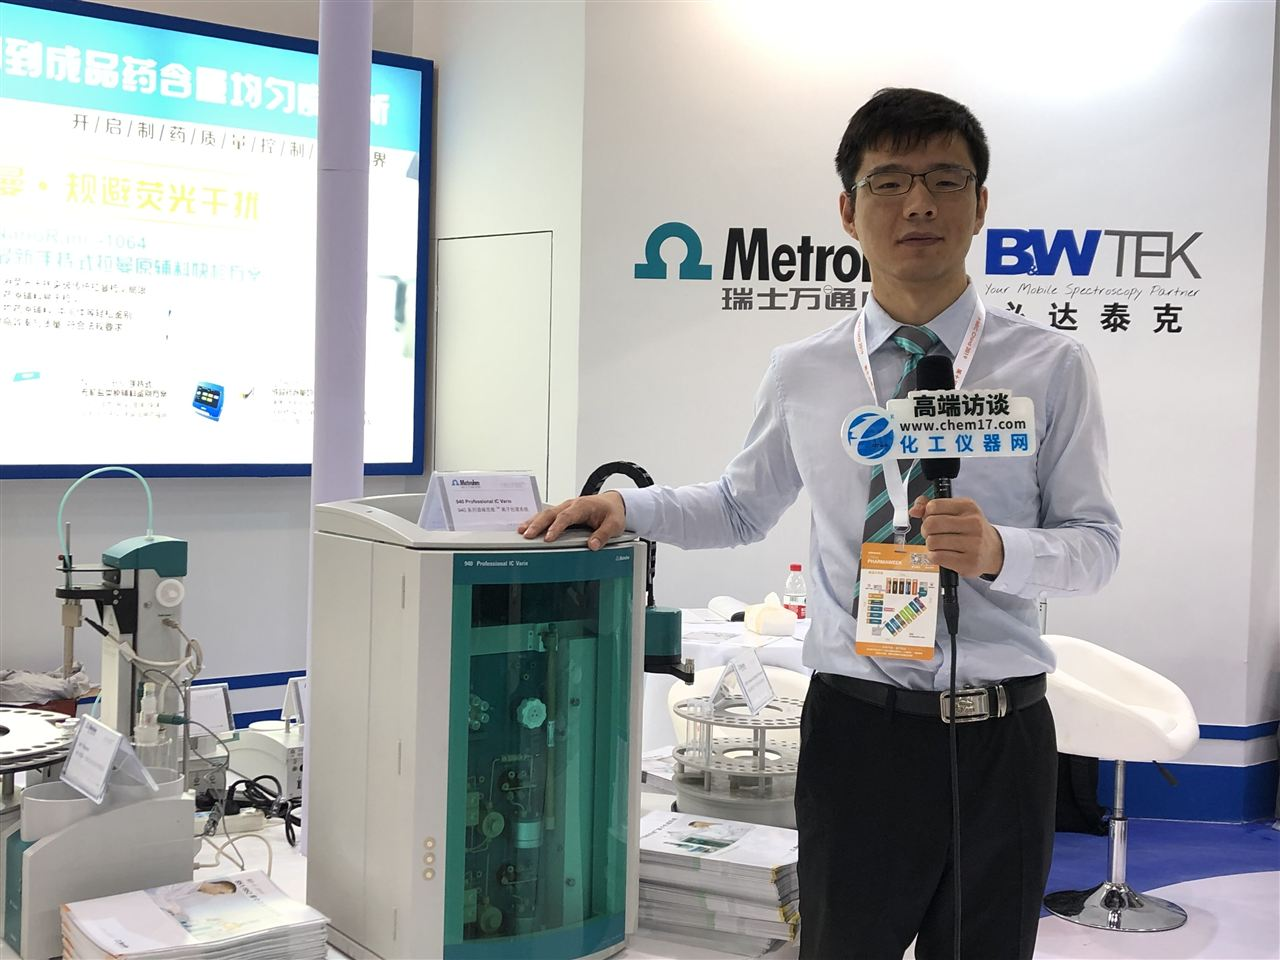 瑞士万通亮相LABWorld China 2019